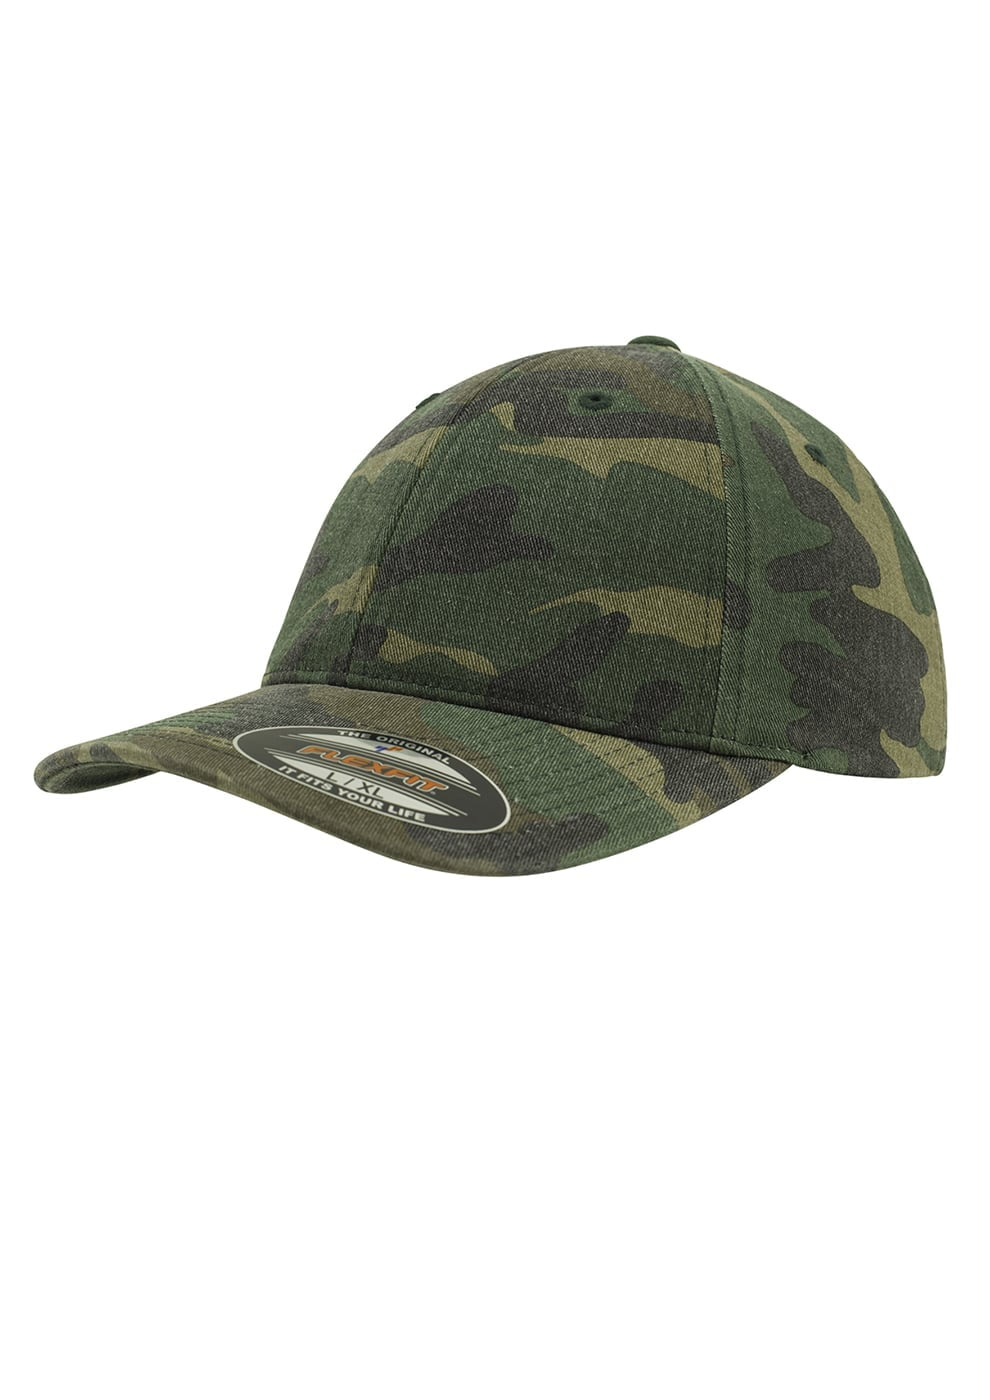 Garmet Washed Camo Cap